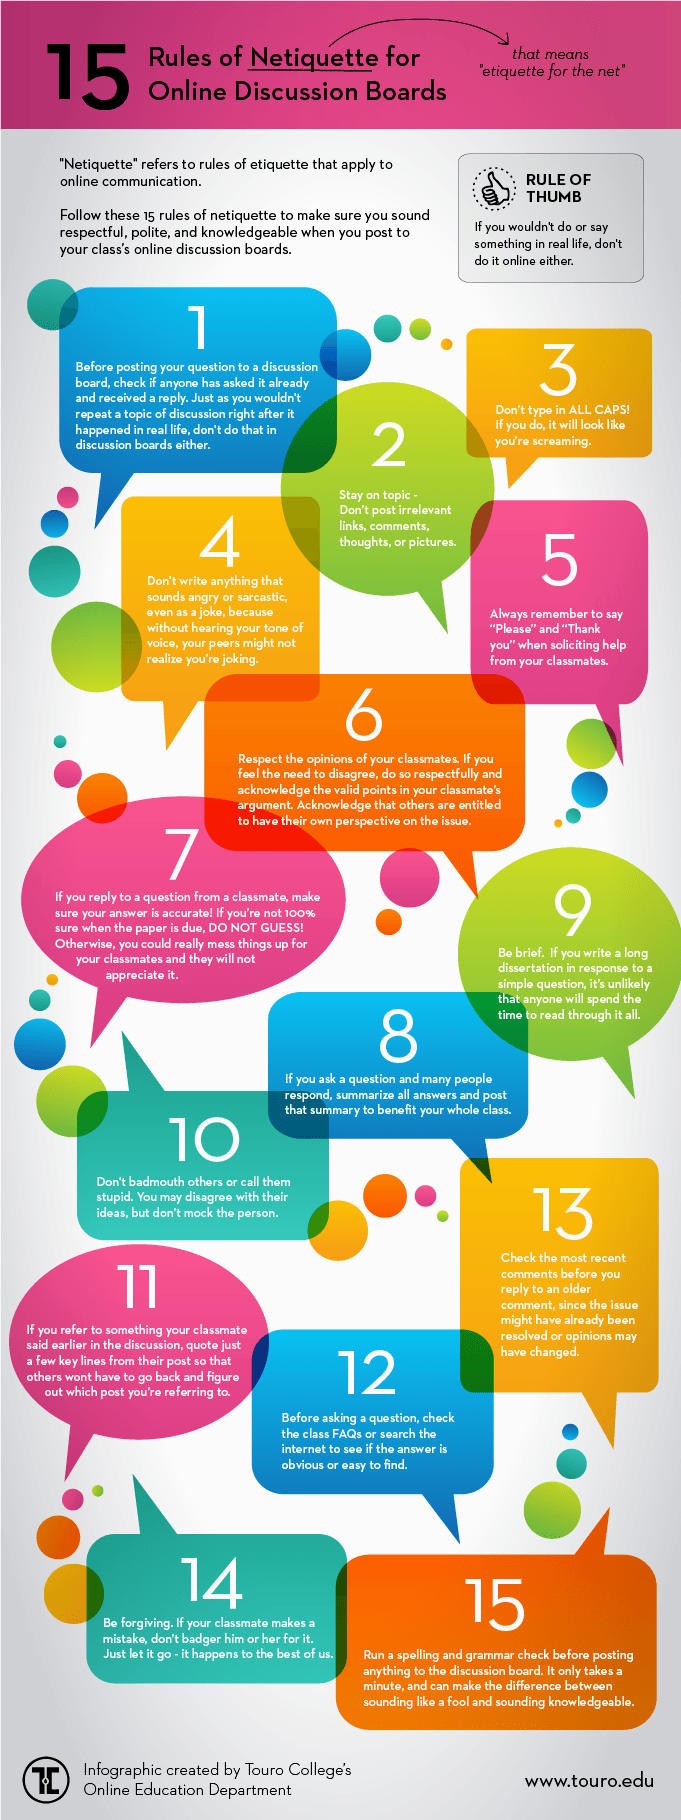 Netiquette-Online-Discussion-Boards-infographic